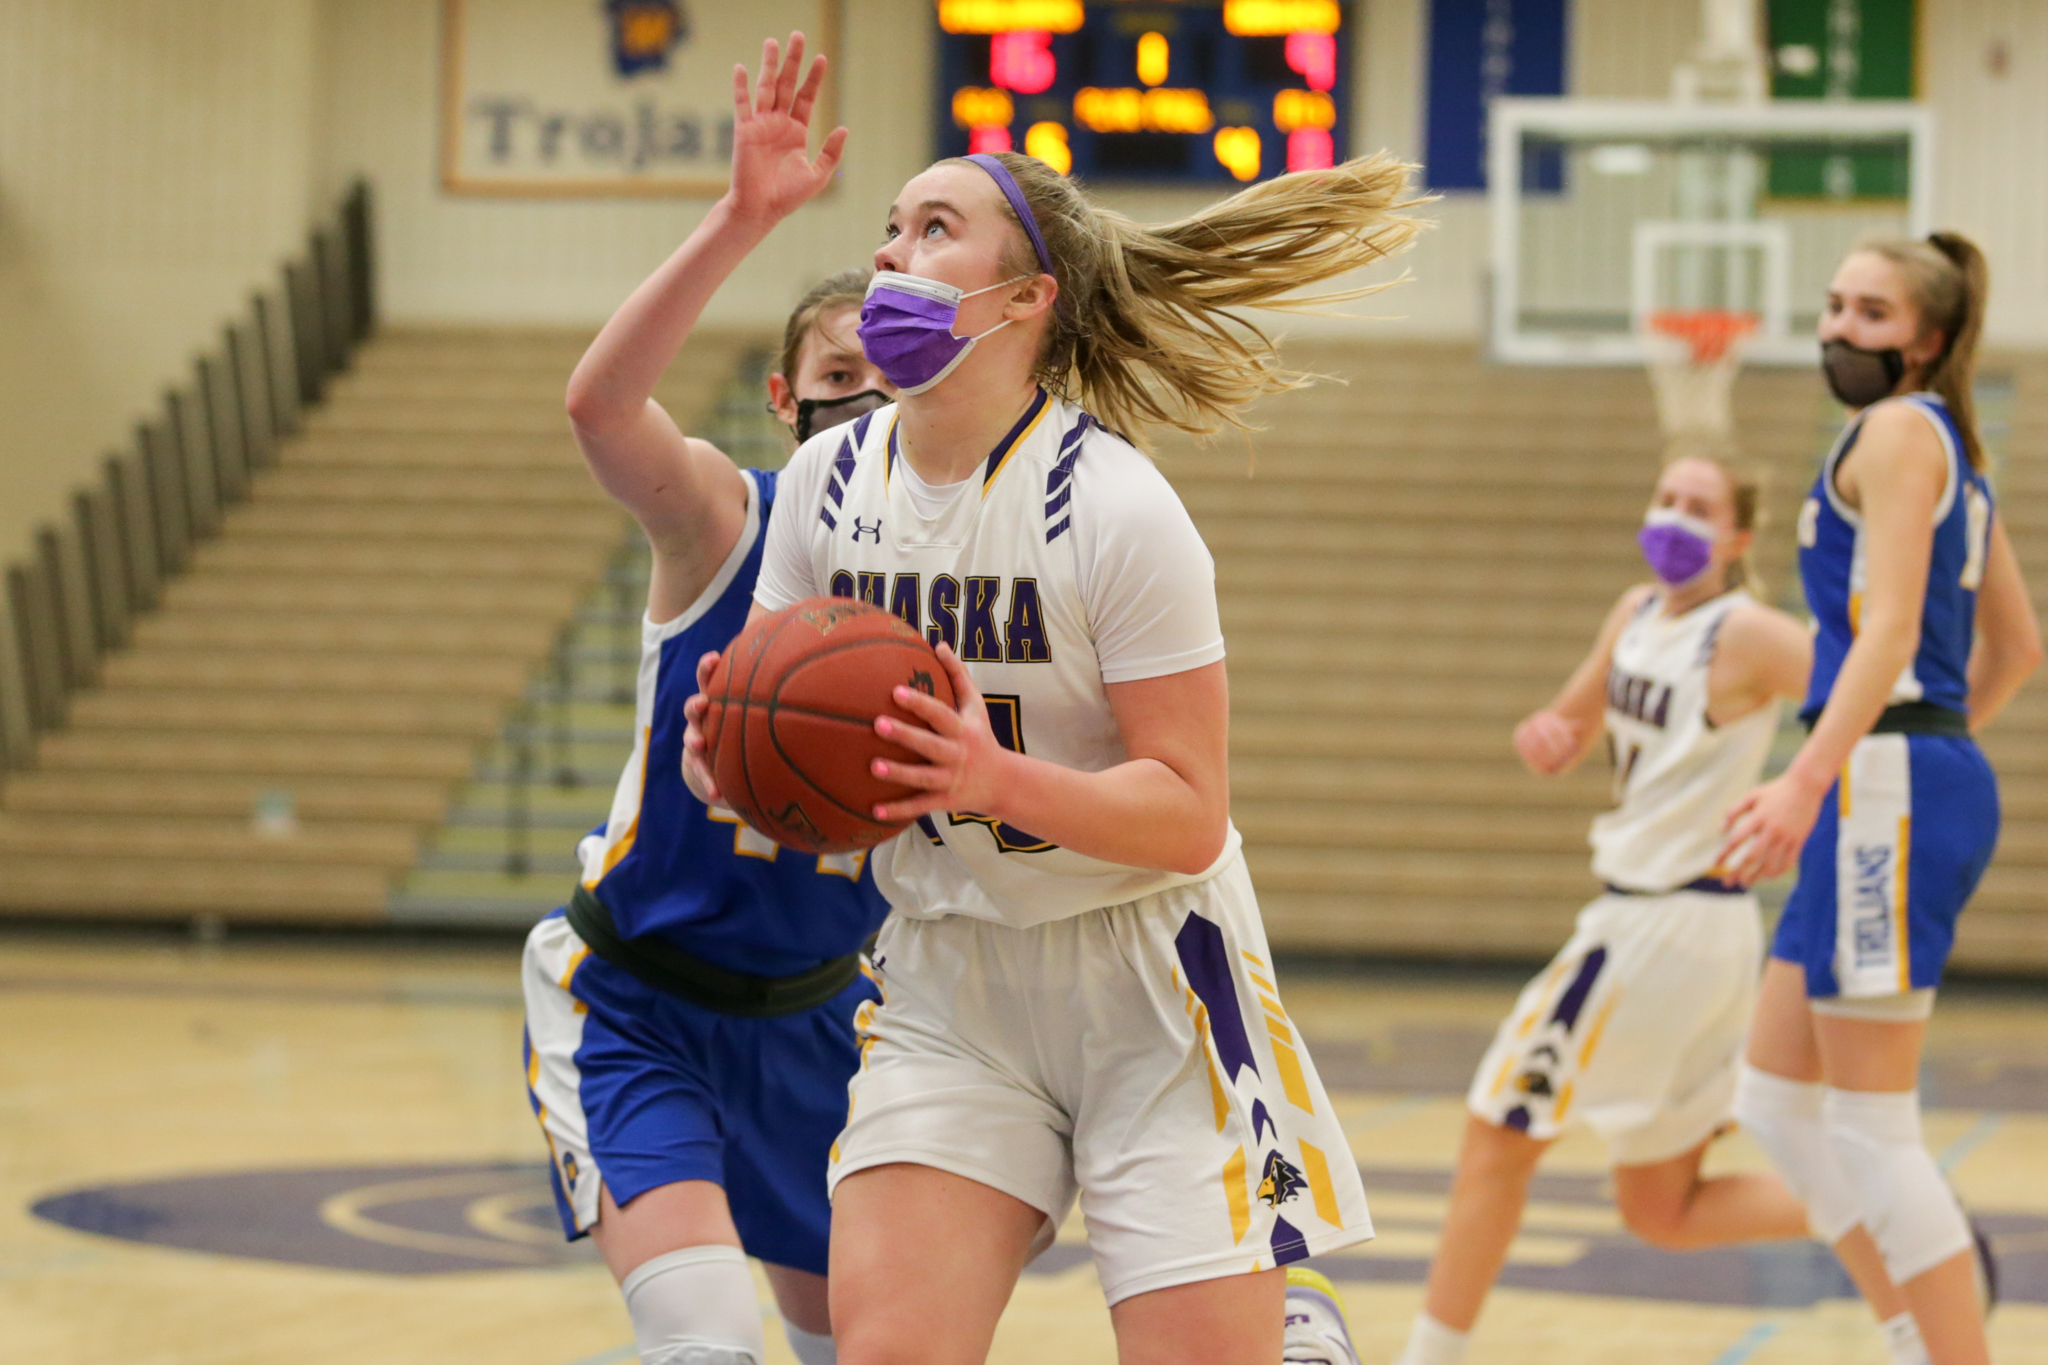 Chaska's Mallory Heyer spins for a layup against Wayzata Friday night. Heyer  had a team-high 18 points in the Hawks' 61-59 victory over the Trojans in Wayzata. Photo by Jeff Lawler, SportsEngine